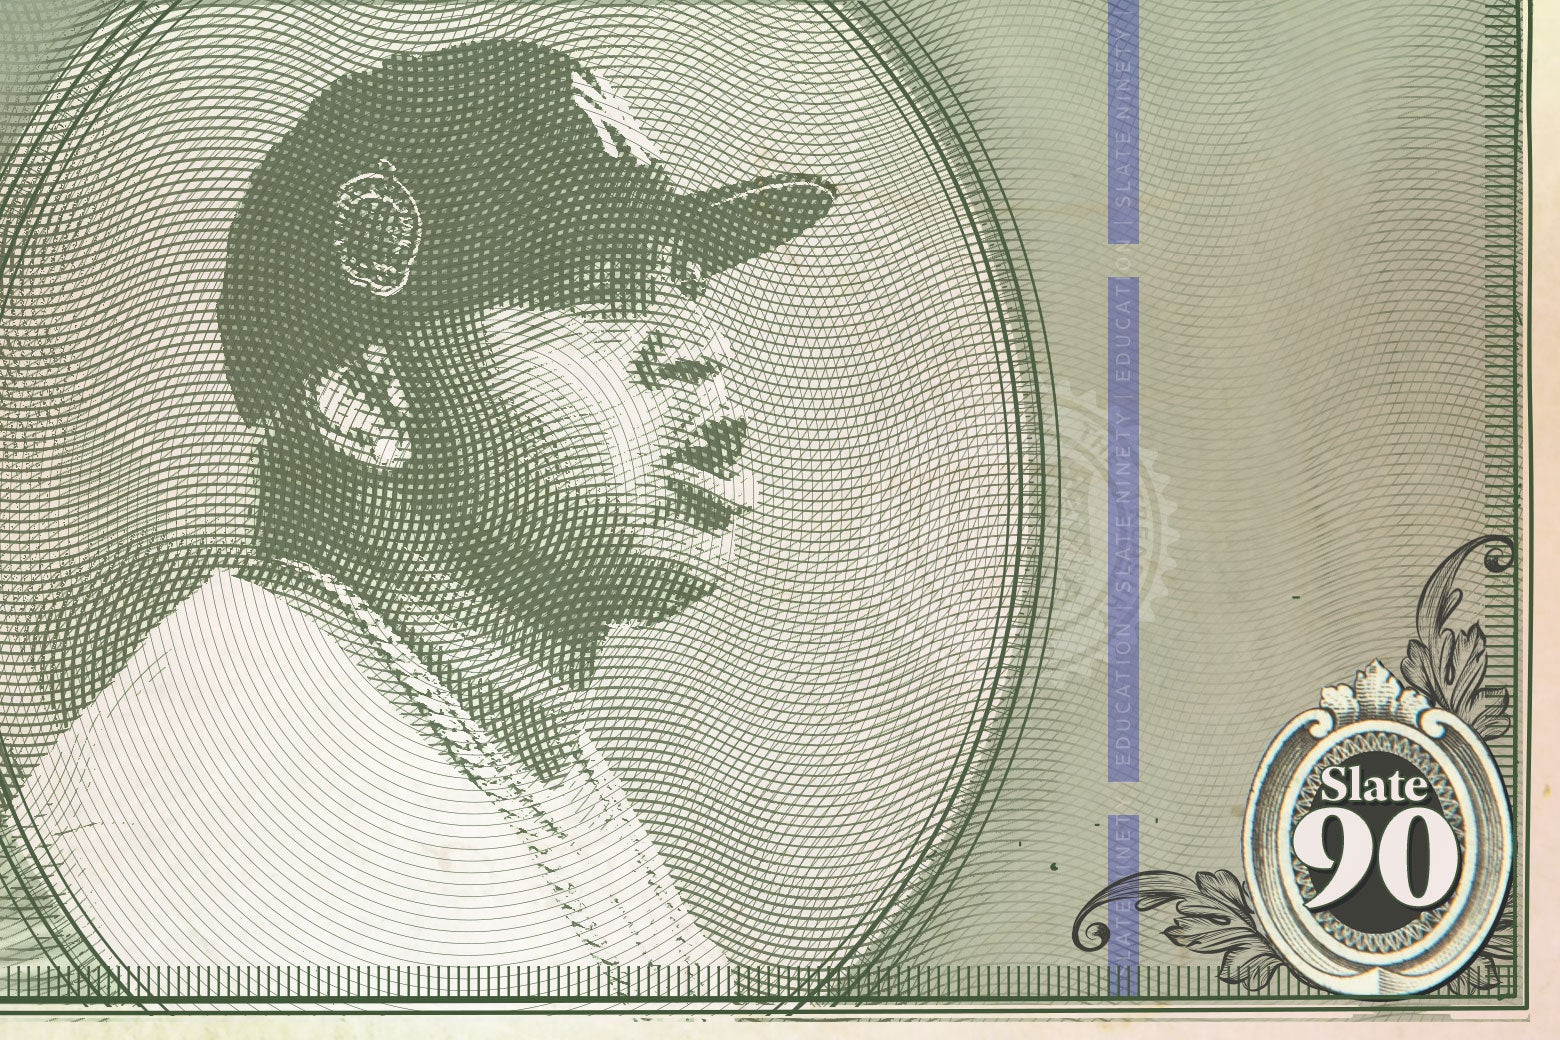 Paper currency showing LL Cool J.